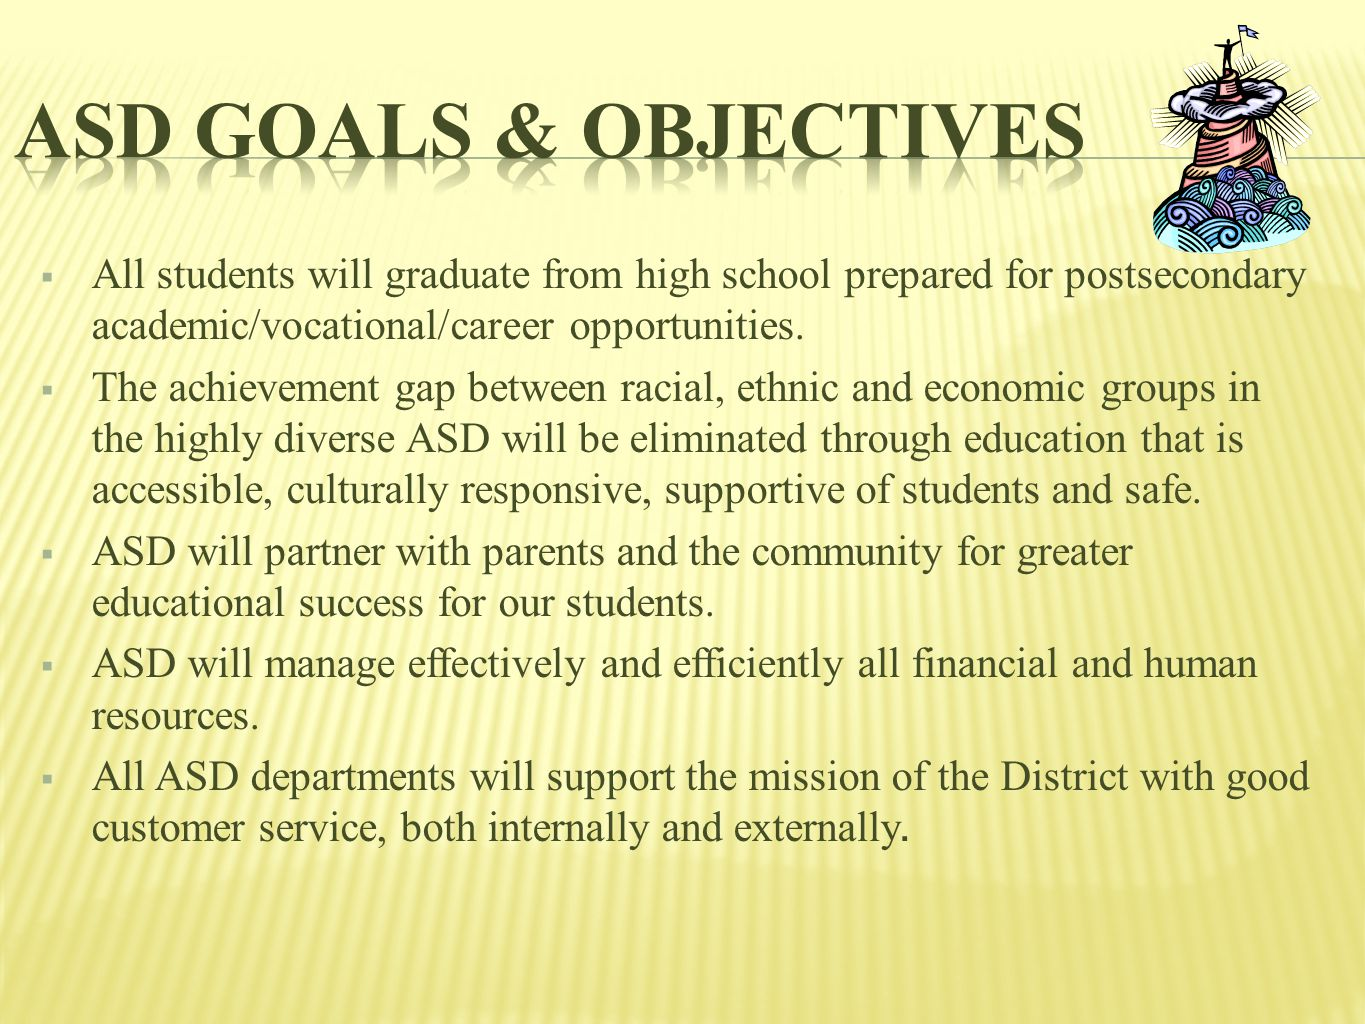  All students will graduate from high school prepared for postsecondary academic/vocational/career opportunities.